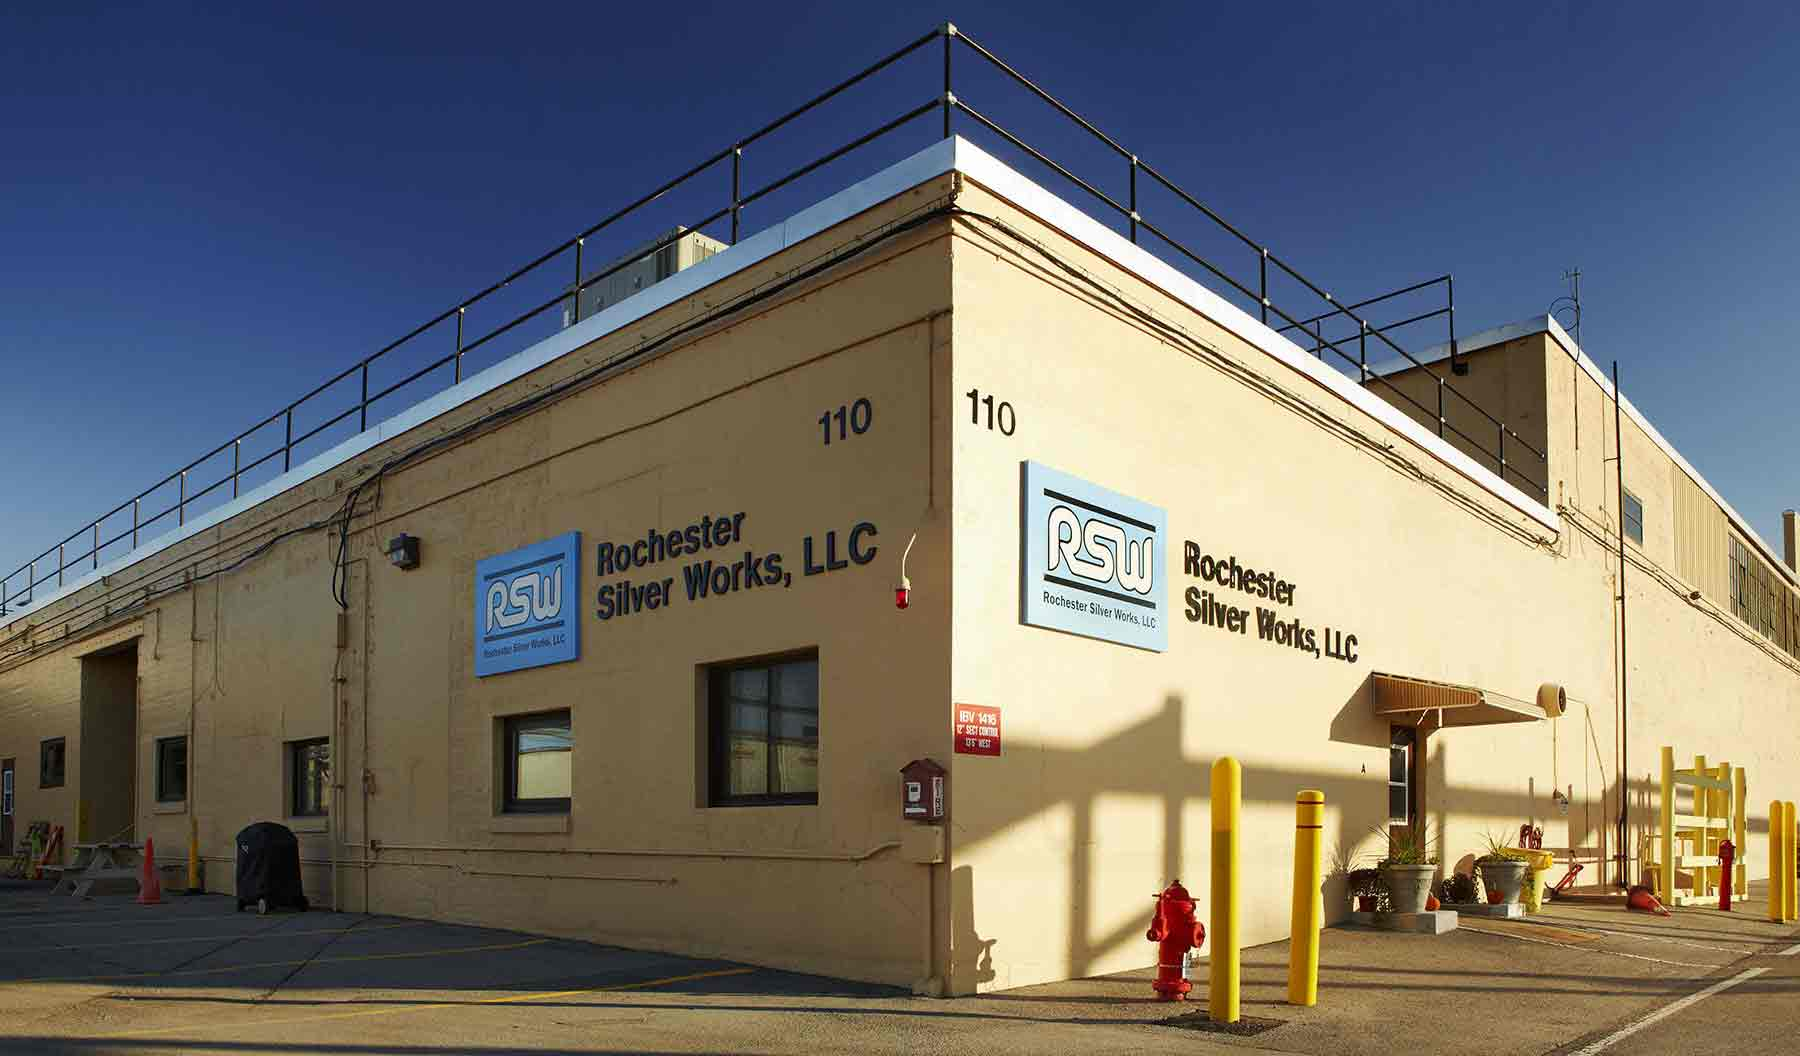 The RSW facility is housed on 10 acres in the Eastman Business Park (EBP), a 1,200-acre industrial complex in Rochester, New York.